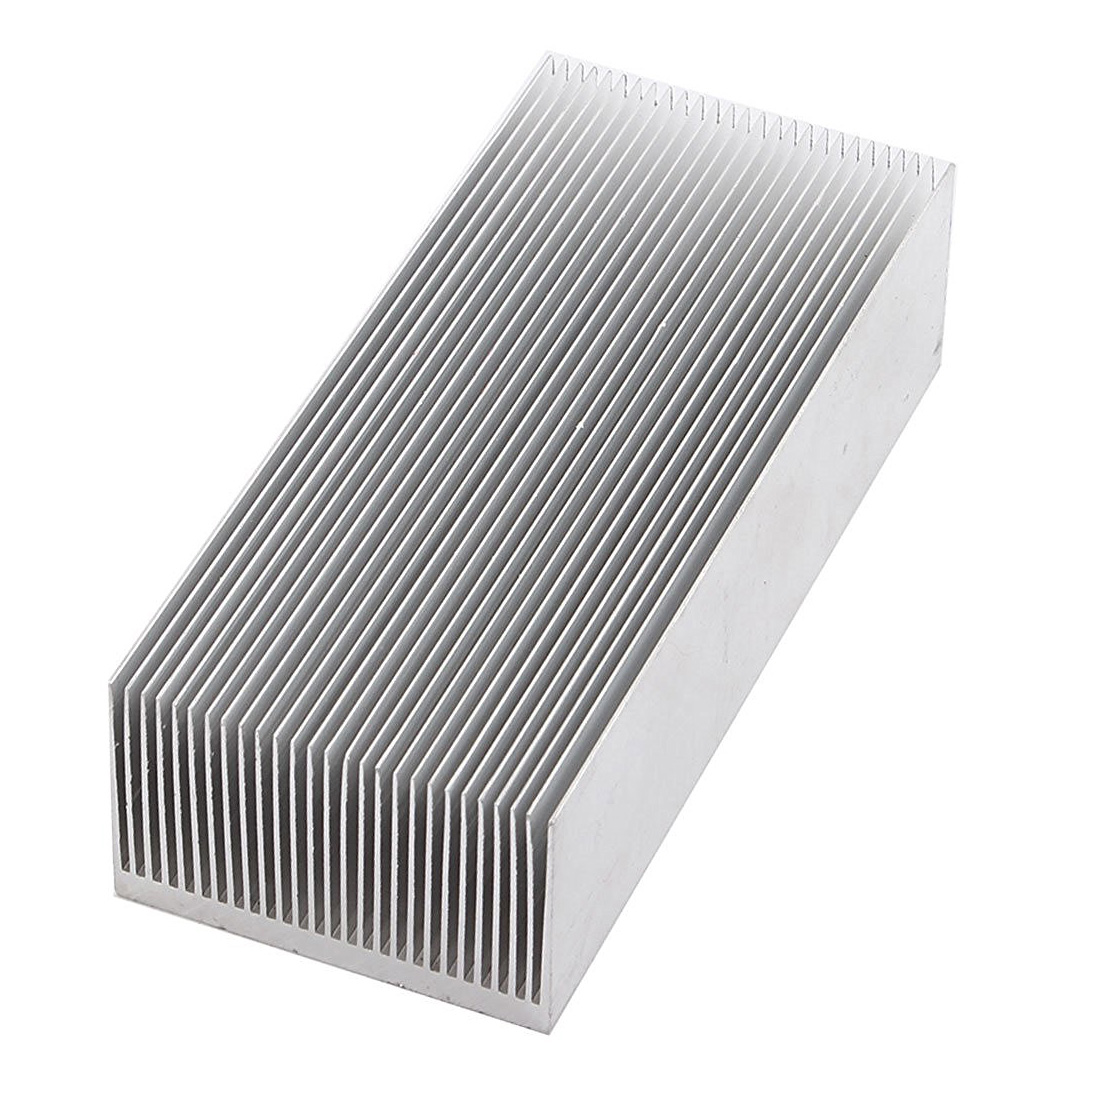 Aluminum Heat Radiator Heatsink Cooling Fin 150x69x37mm Silver Tone 75 29 3 15 2mm pure copper radiator copper cooling fins copper fin can be diy longer heat sink radiactor fin coliing fin